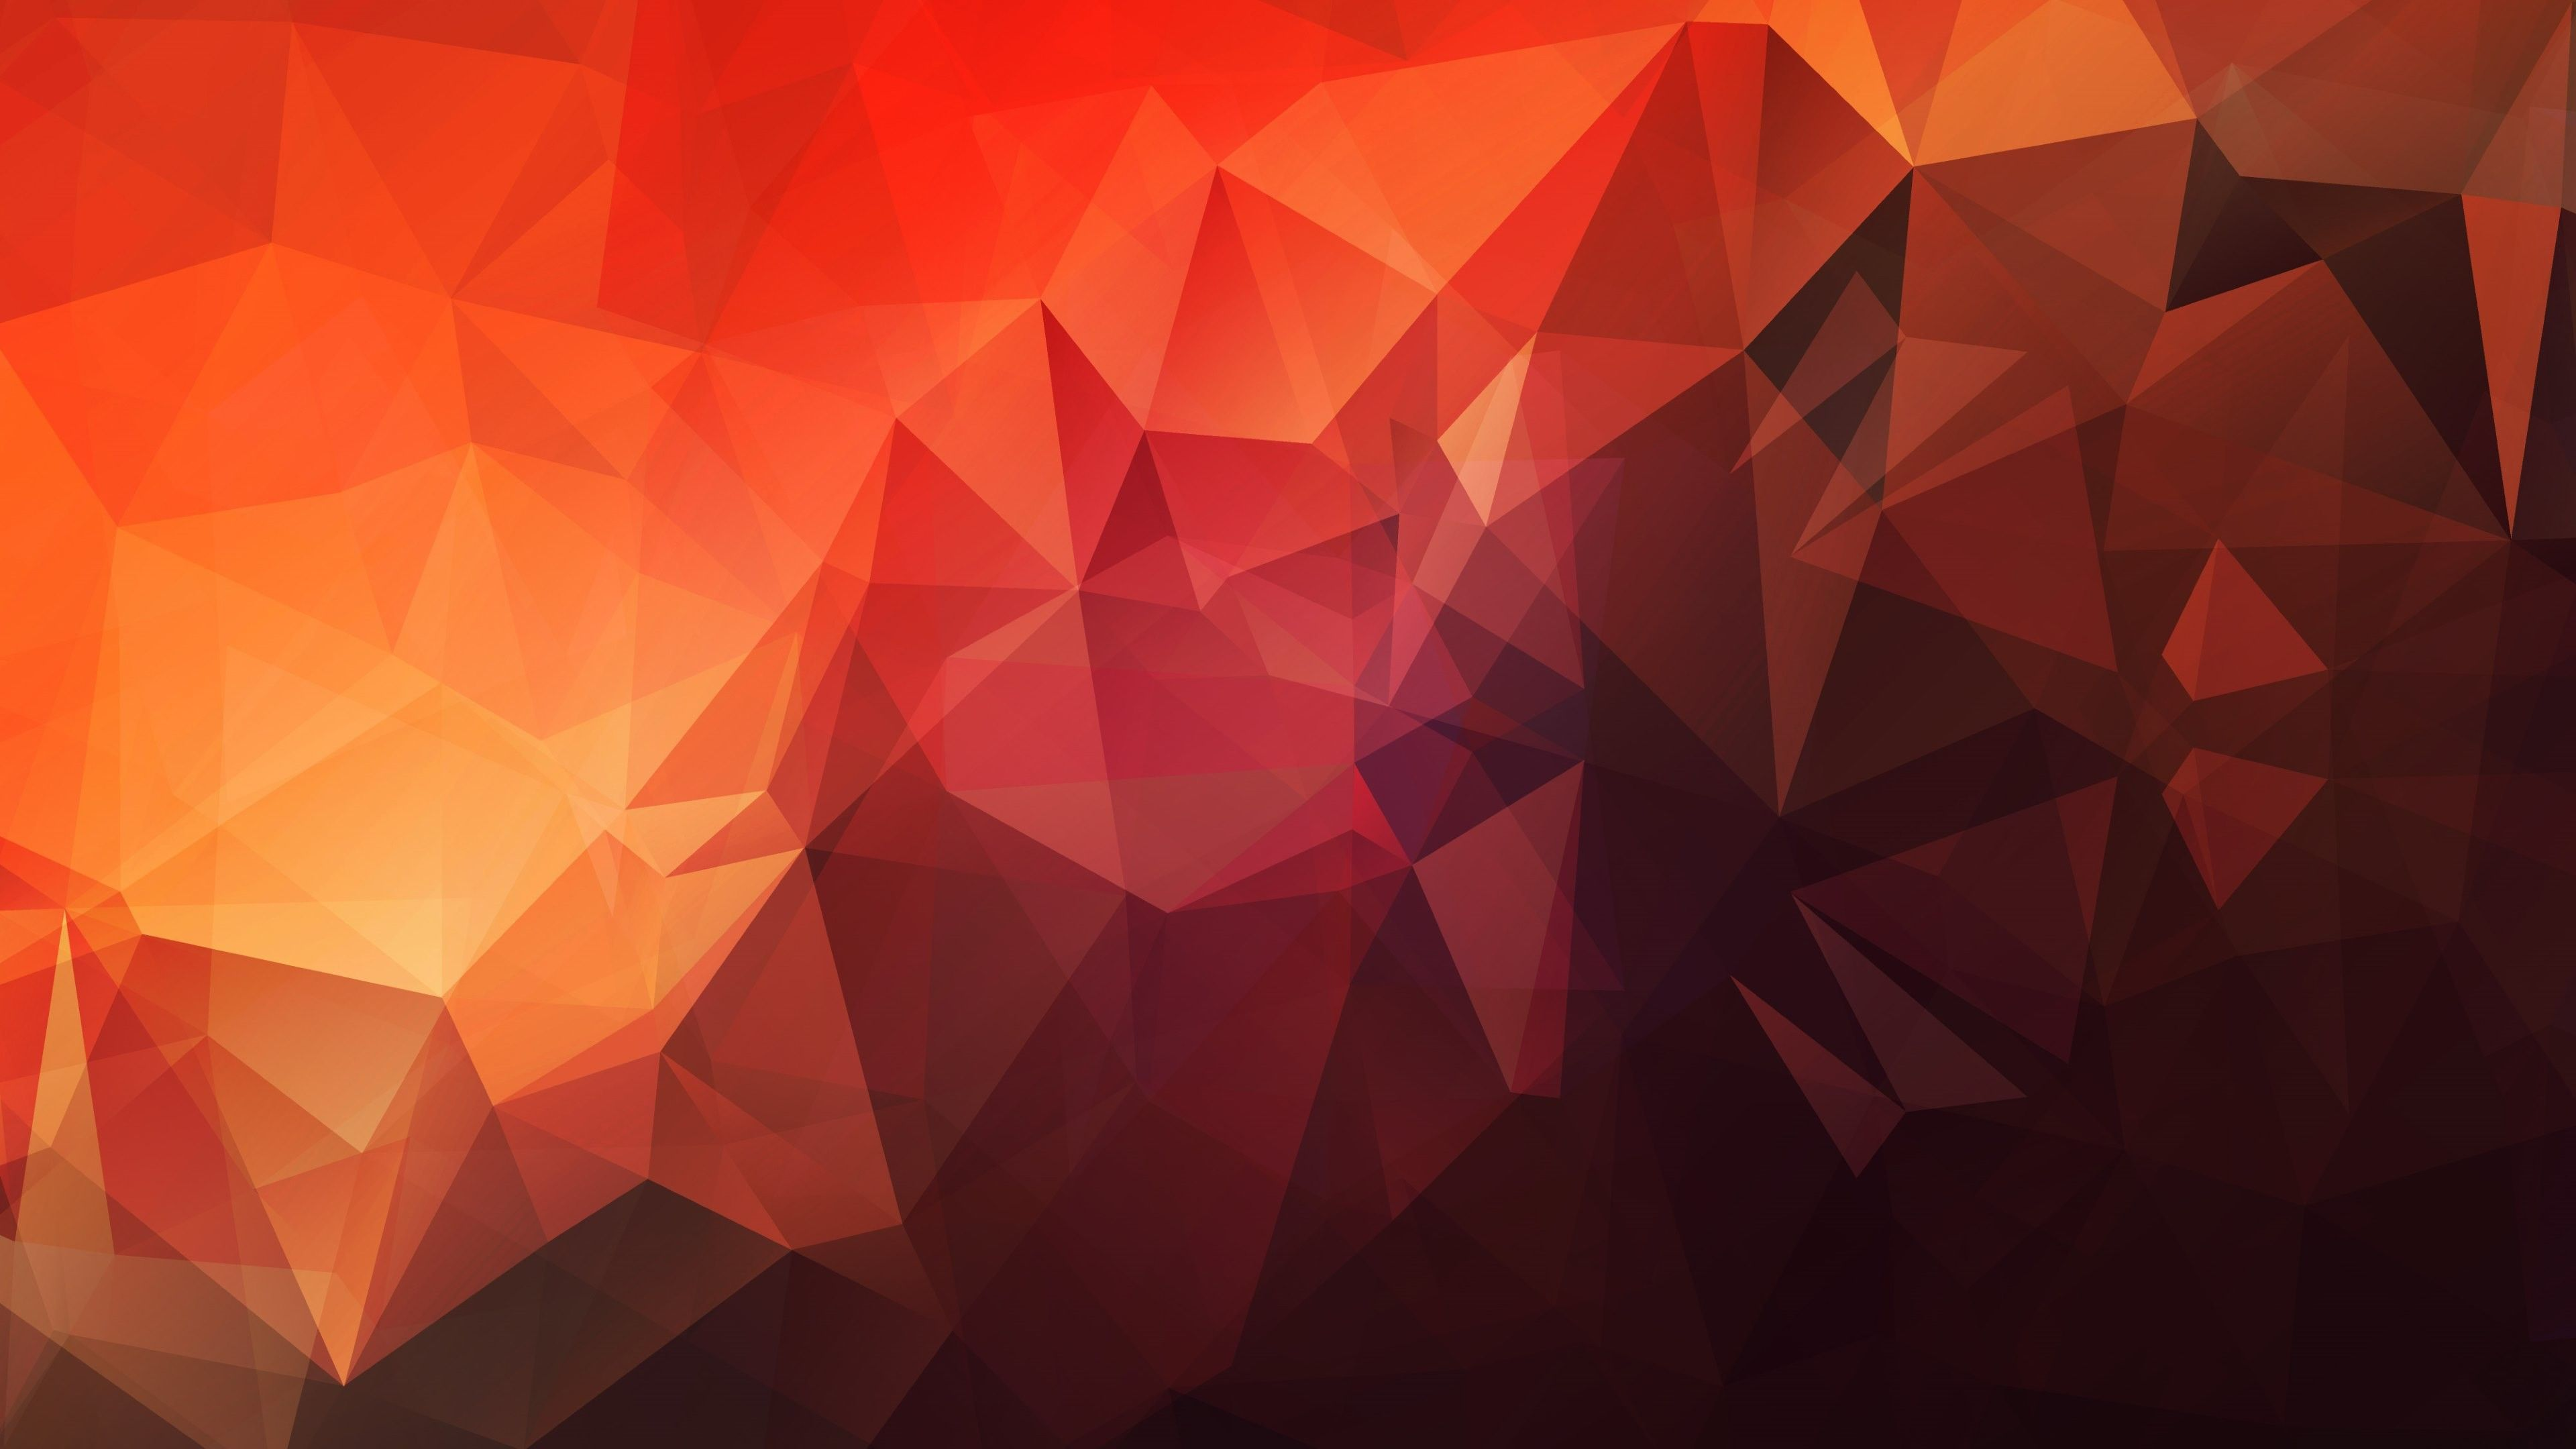 3840x2160 Wallpaper Polygon Ultra Hd 4k 3840x2160 Underwater Wallpaper 3840x2160 Wallpaper Abstract Wallpaper